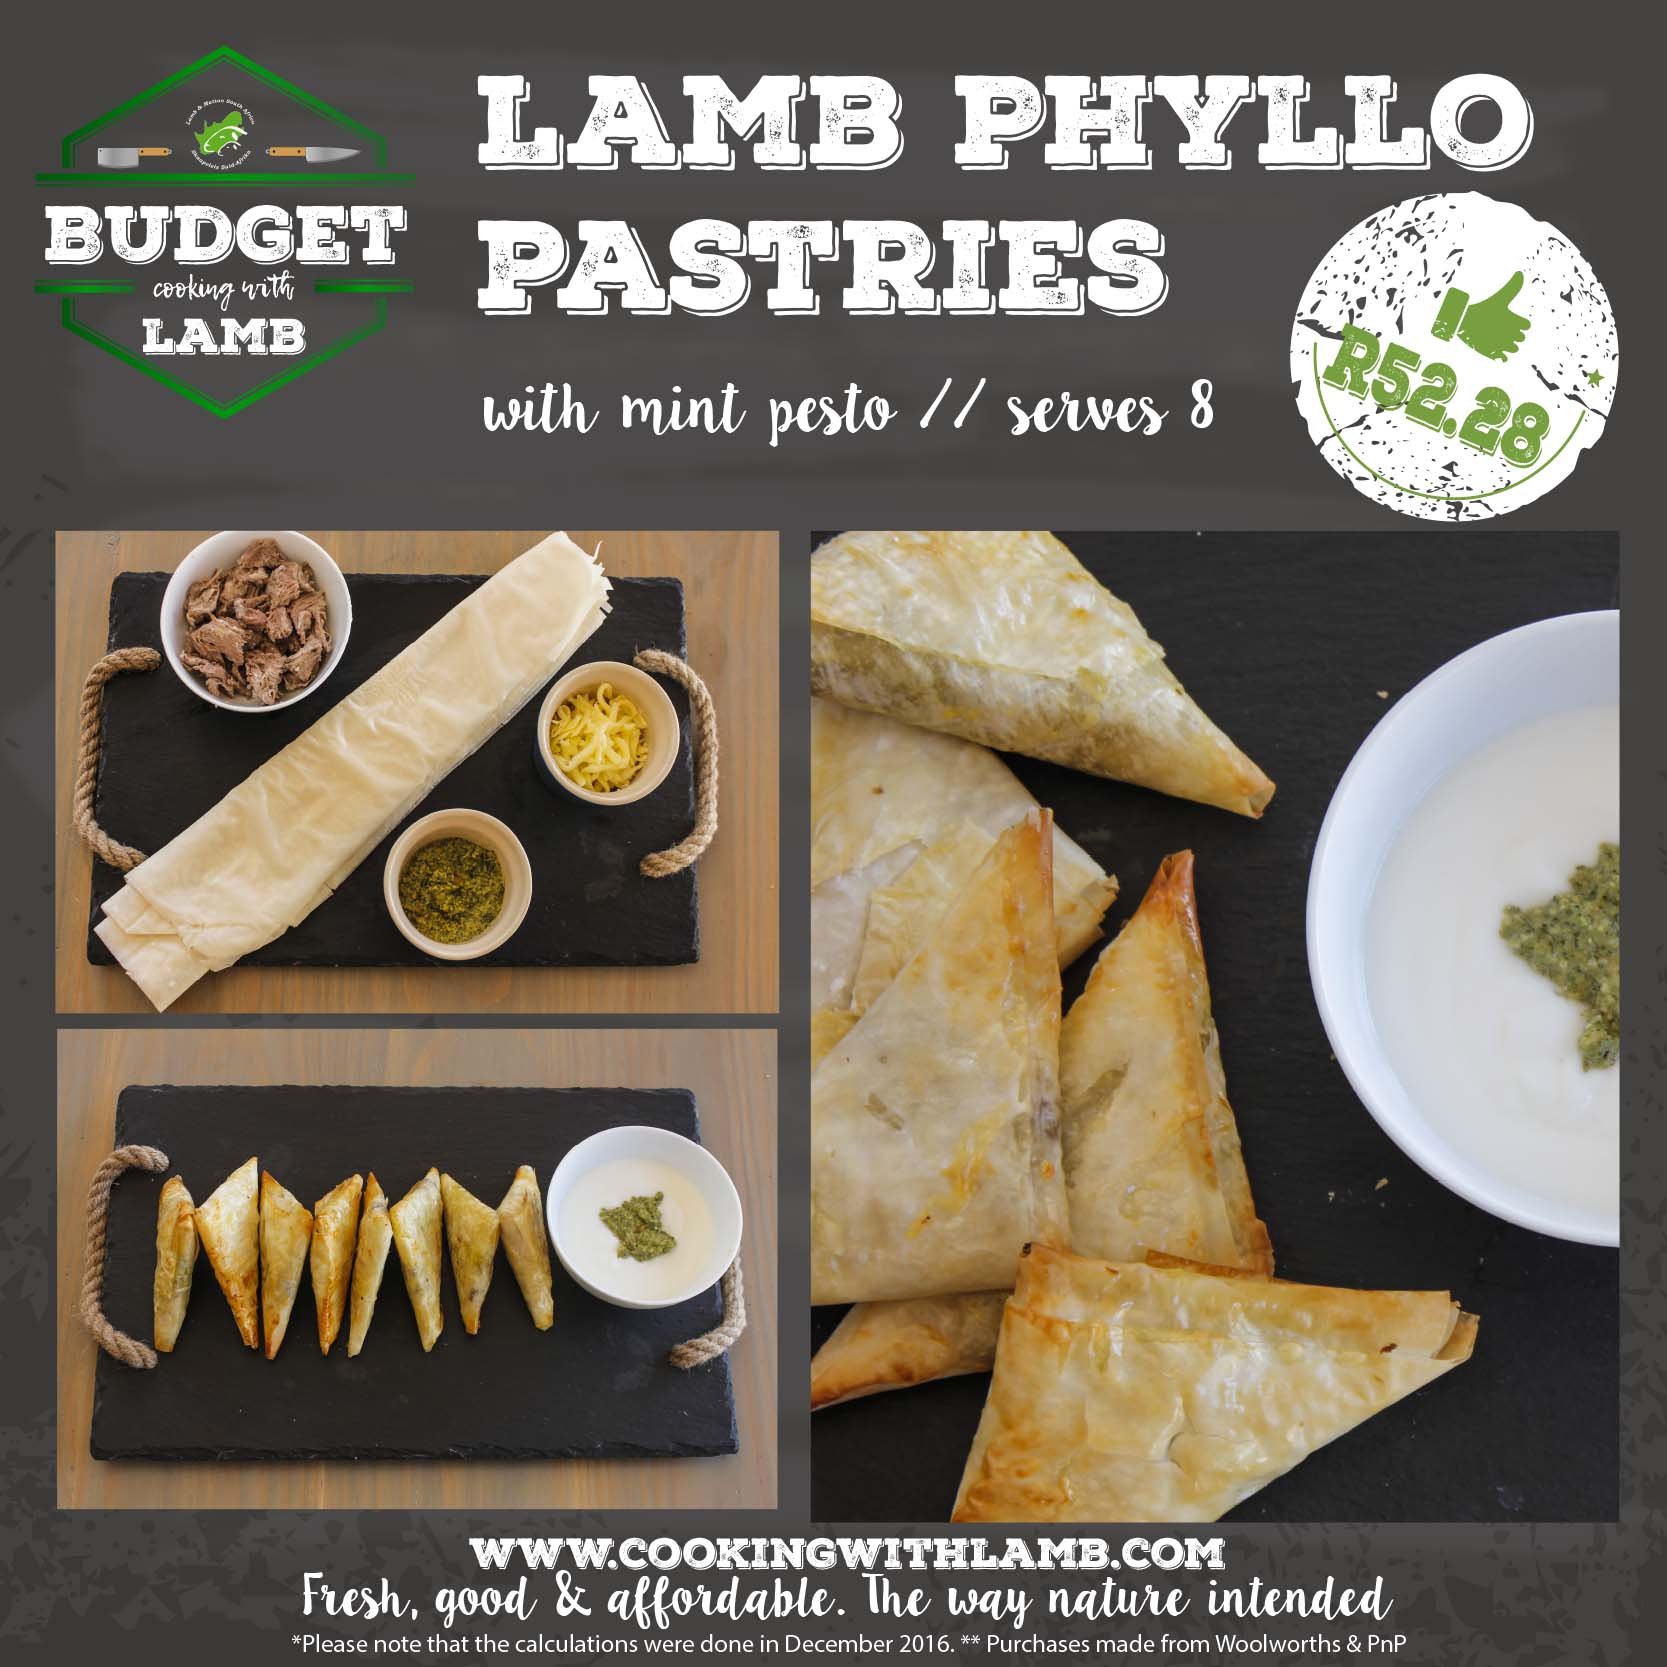 Lamb phyllo pastries short recipe.jpg